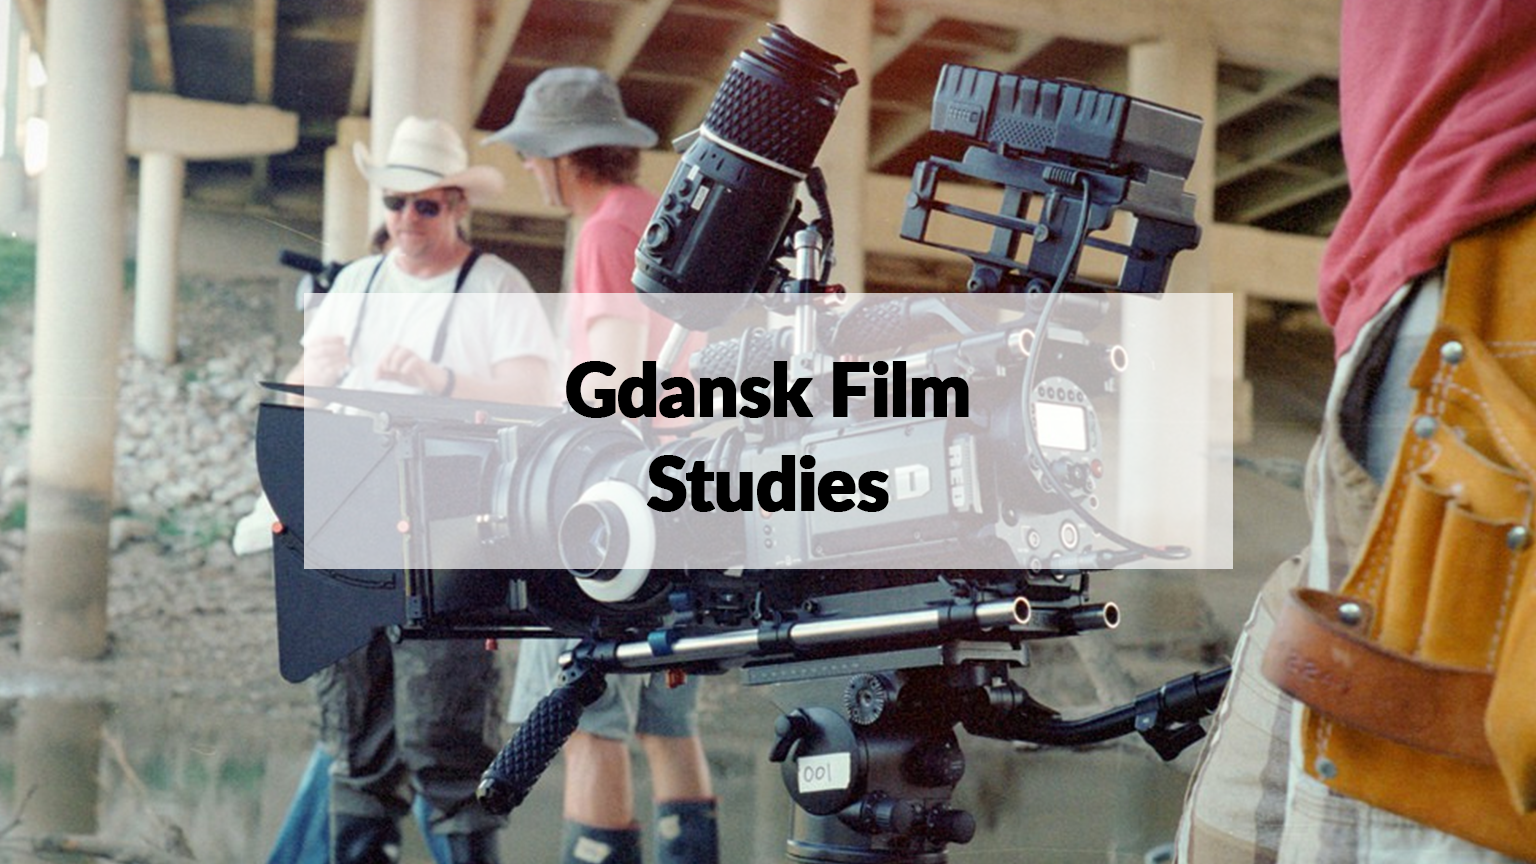 Gdansk Film Studies